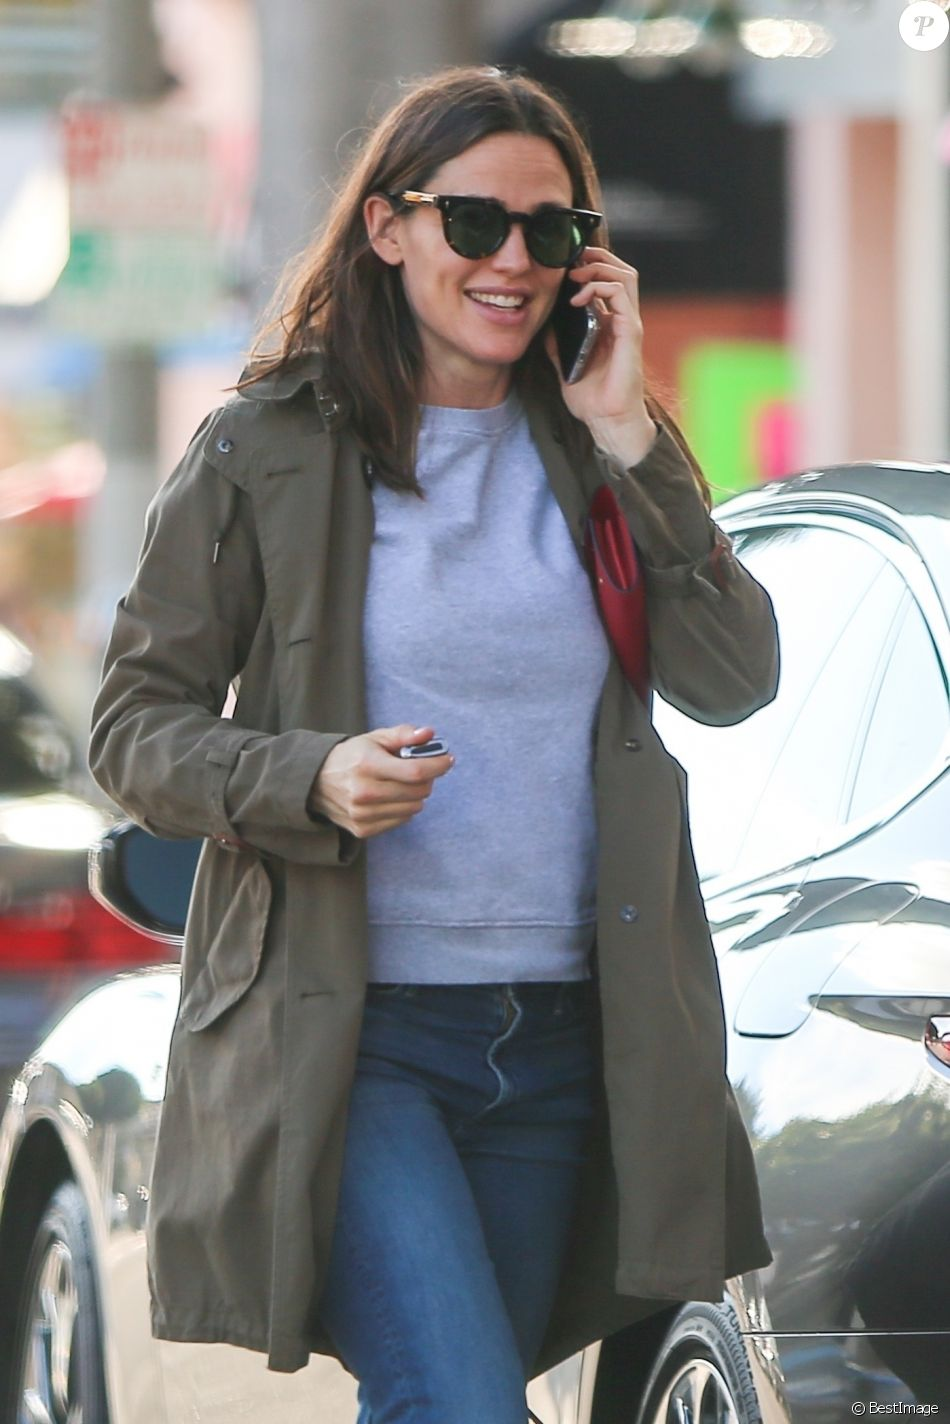 Exclusif - Jennifer Garner fait du shopping à Los Angeles, le 12 janvier 2019.  Exclusive - Germany call for price - Jennifer Garner is all smiles while out running errands. Jennifer looks casual as she chats on the phone as she parks her car. January 12th, 2019.12/01/2019 - Los Angeles